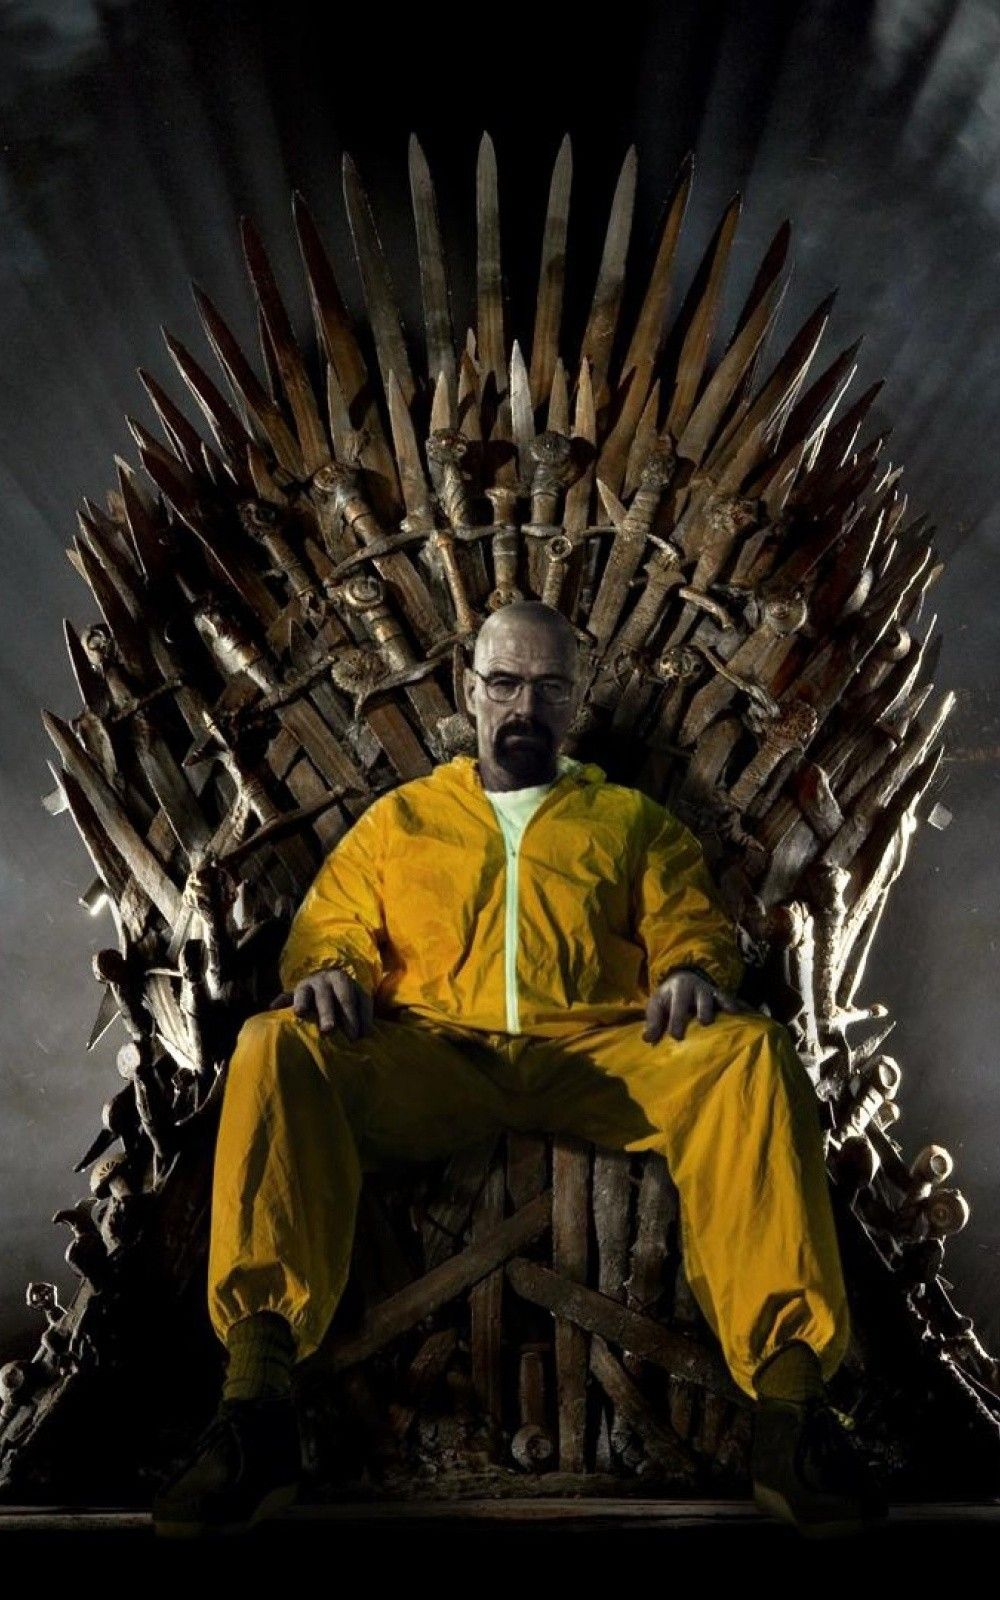 Breaking Bad Game Of Thrones Android And Iphone Wallpaper Background And Lockscreen Hd Breaking Bad Bad Wallpaper Posteres De Filmes